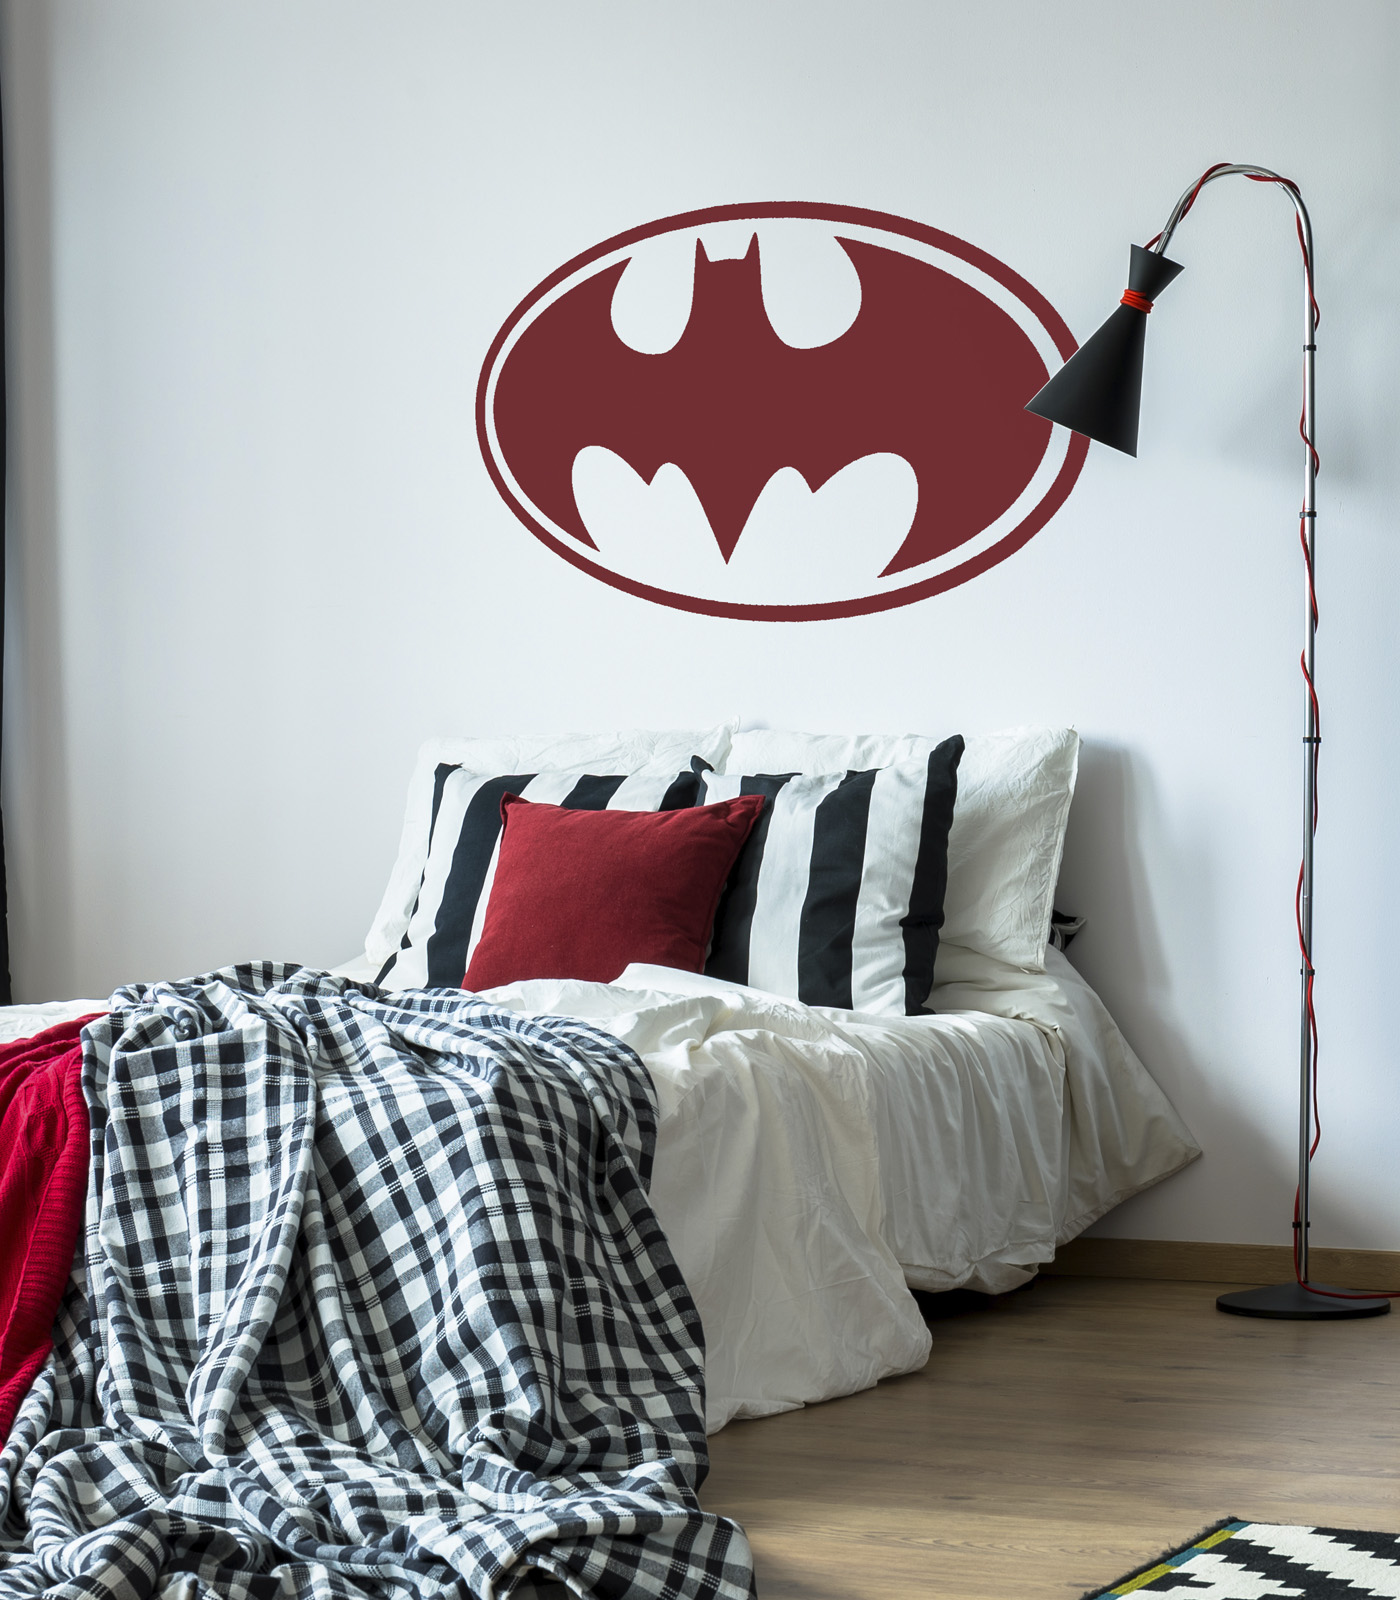 Batman - Decoravinilos, vinilo de corte para pared y superficies planas